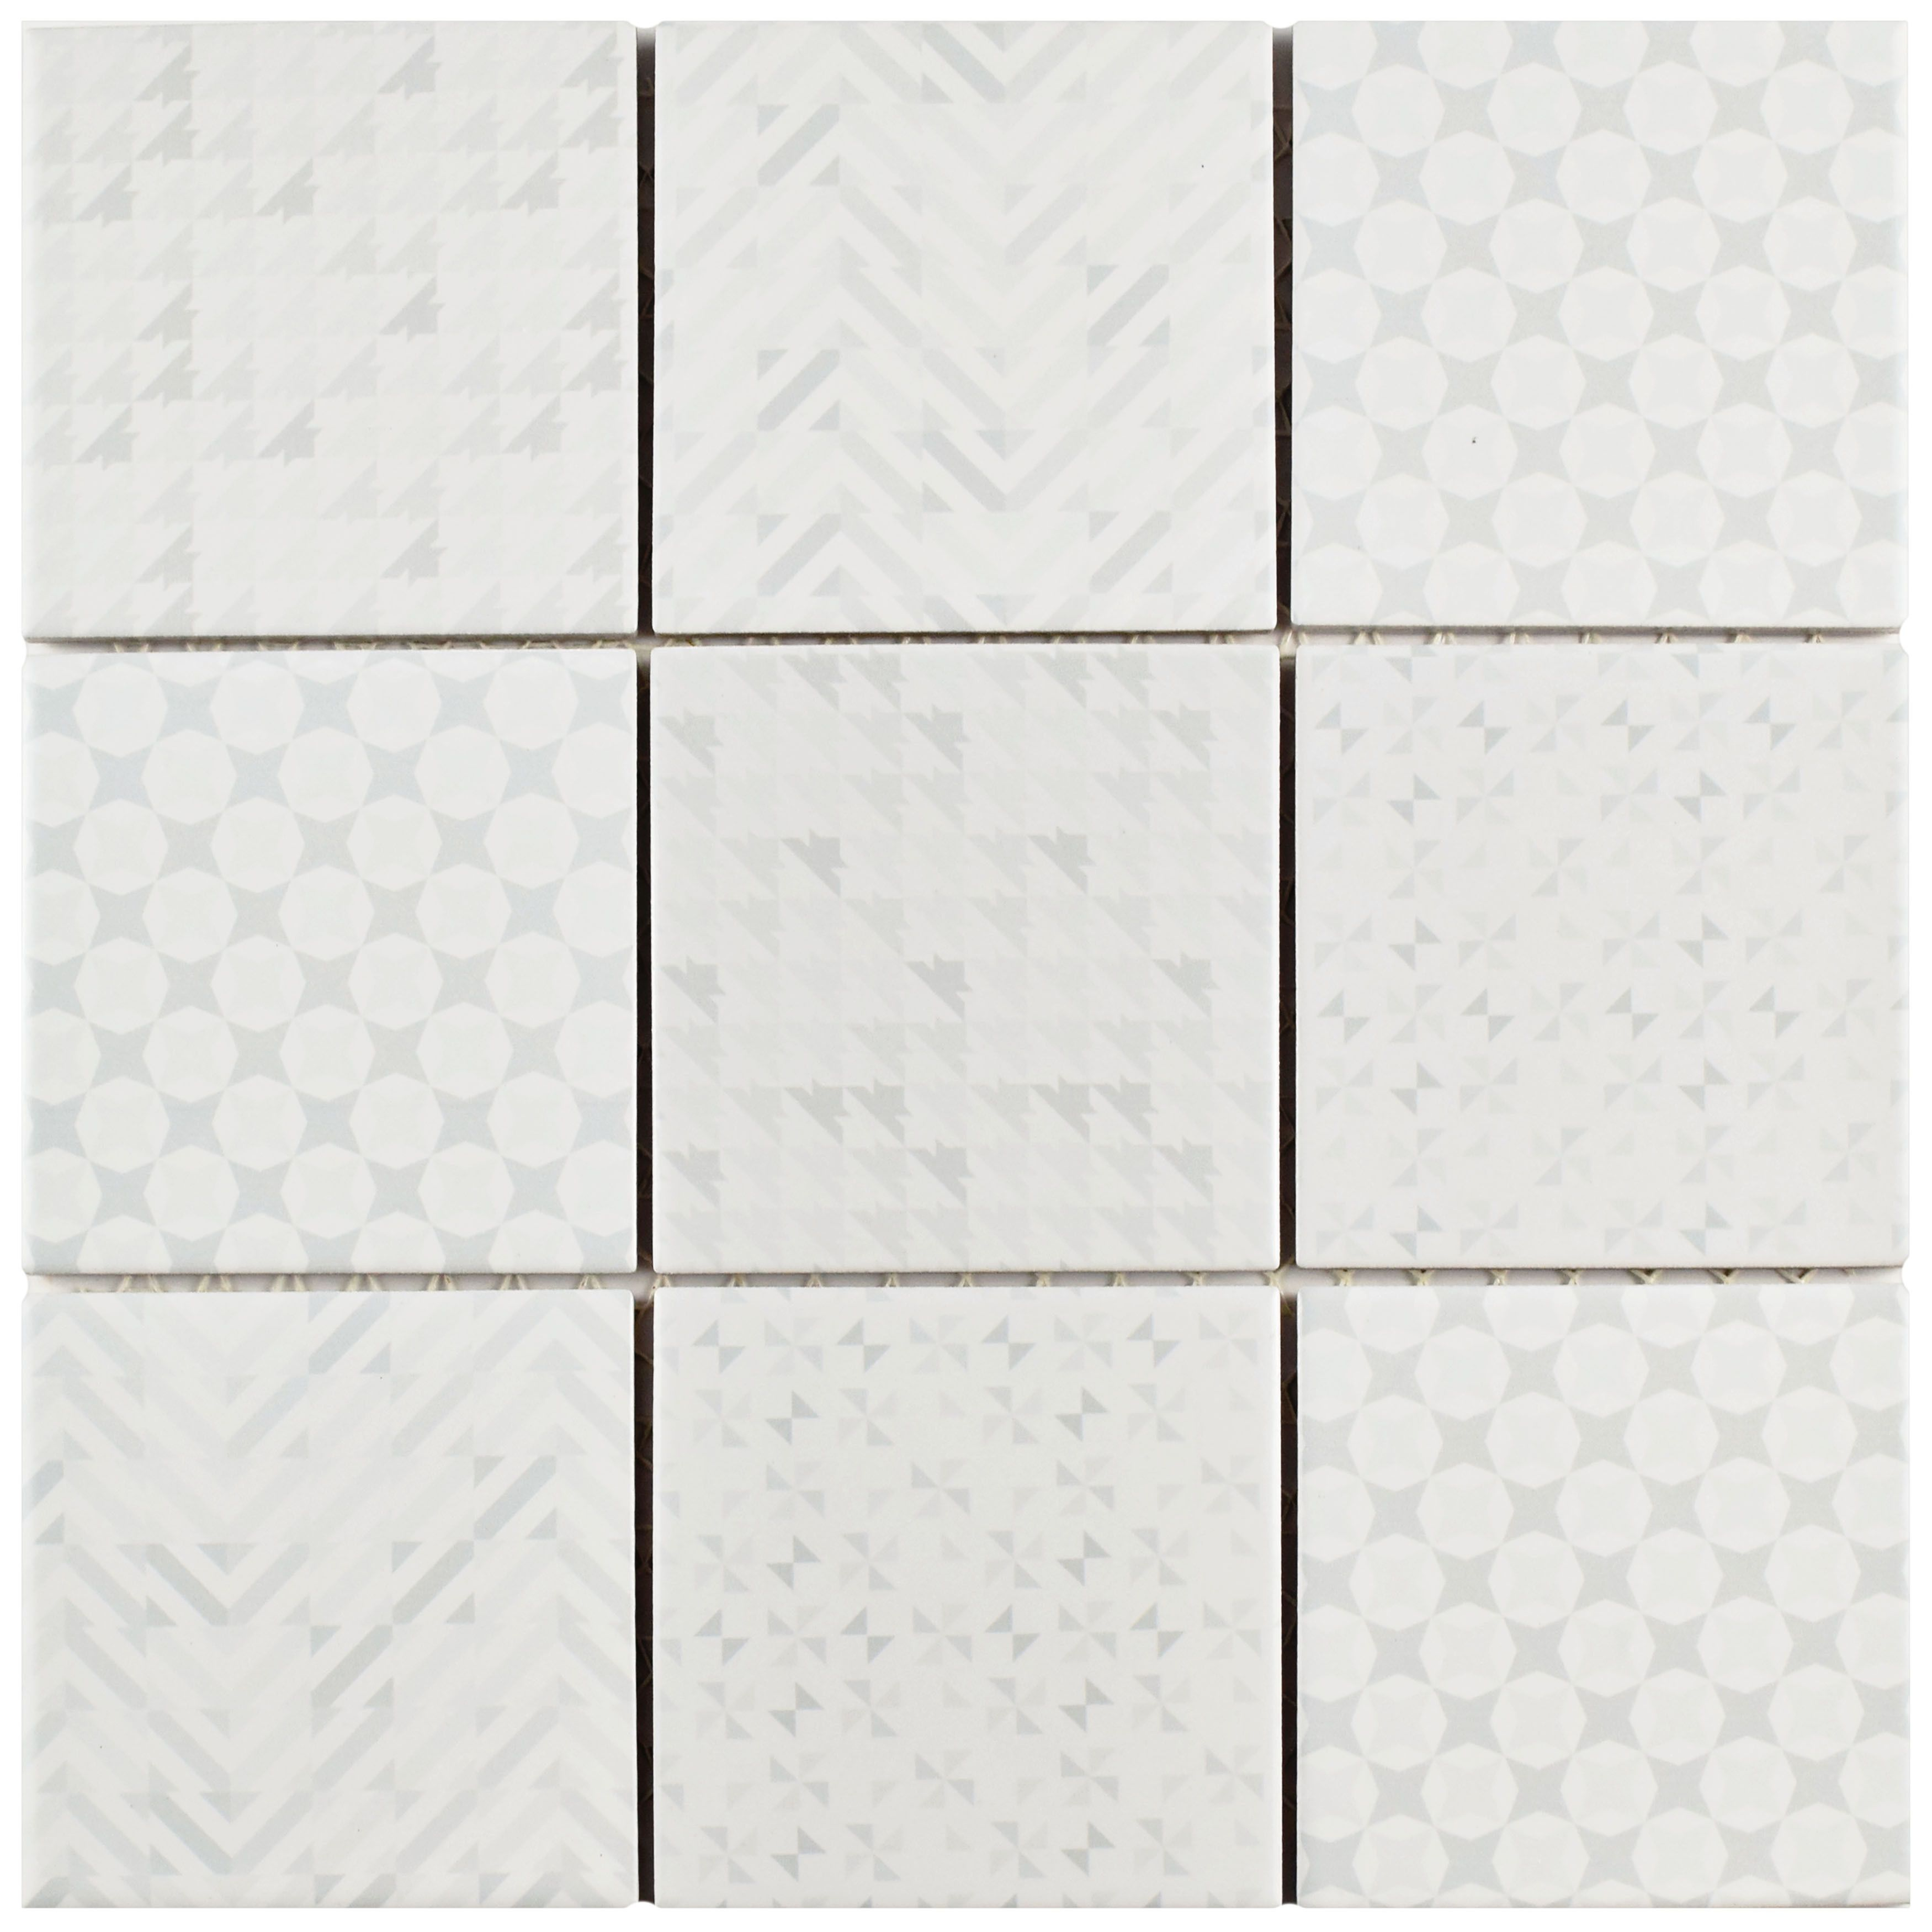 The Somertile Geoshine White Porcelain Floor And Wall Tile Captures